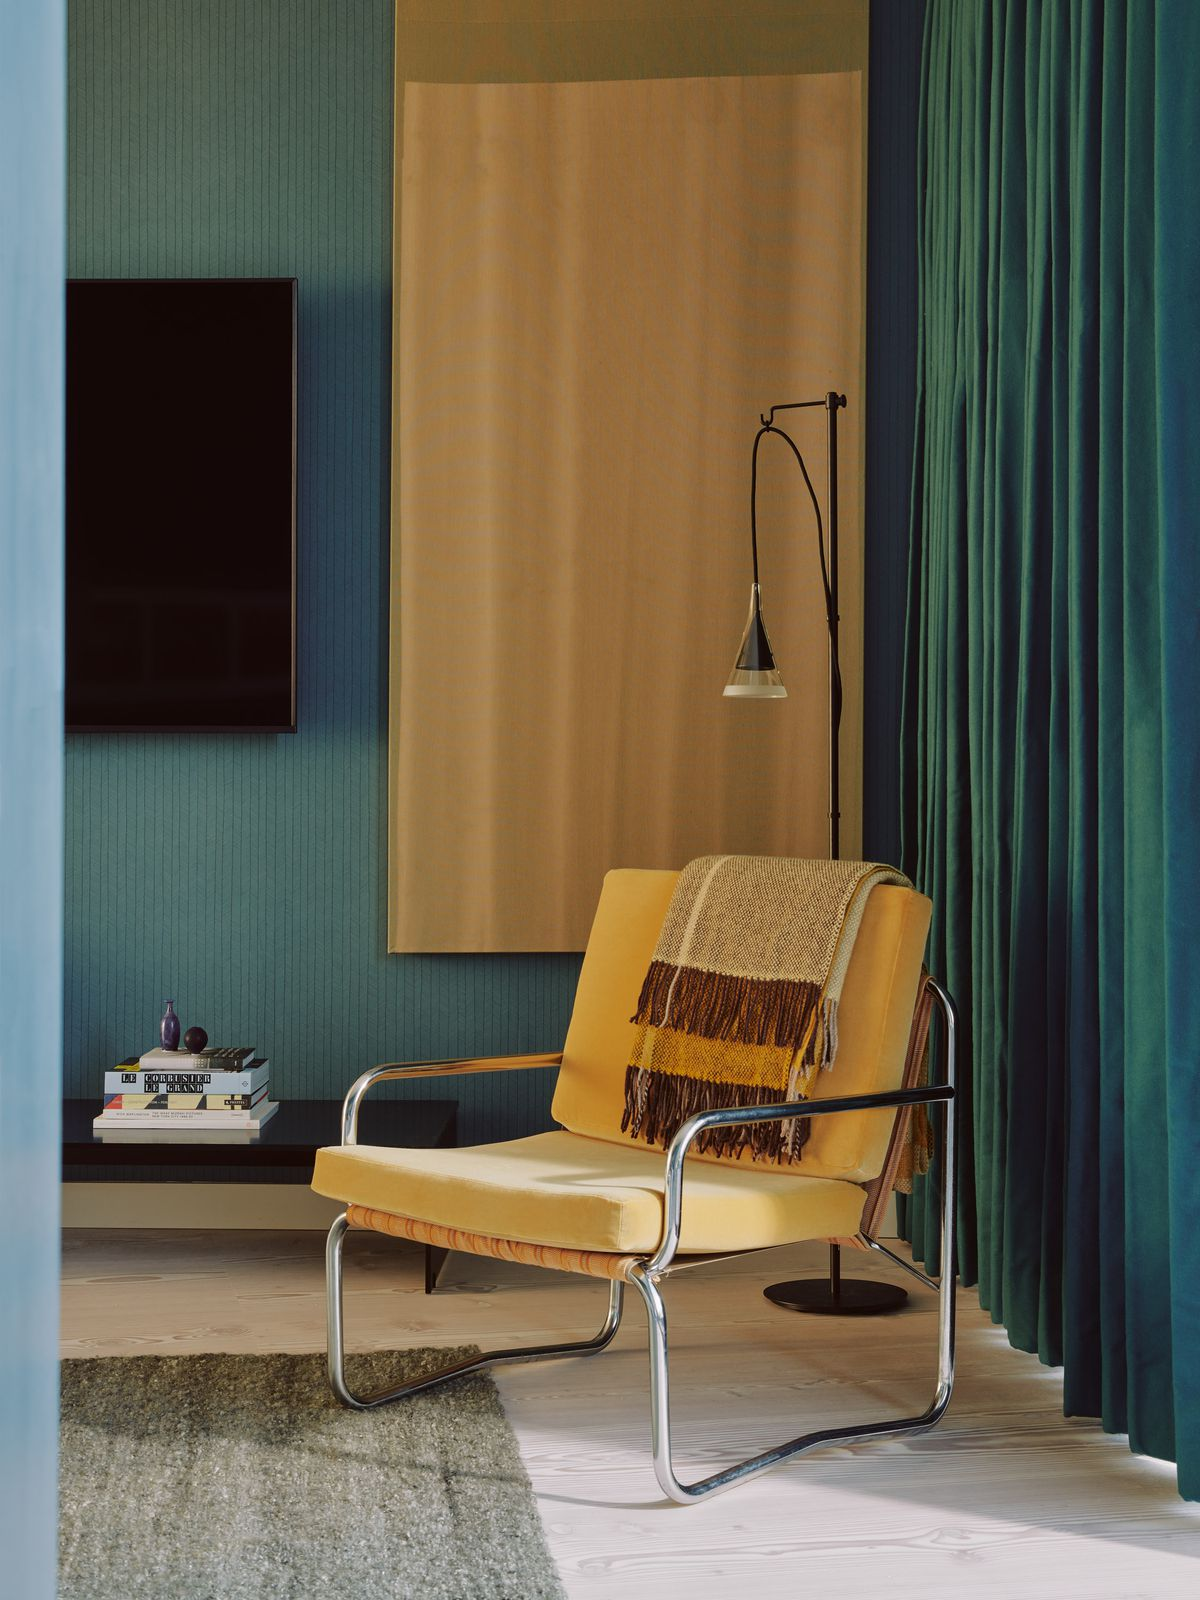 A yellow armchair in front of teal curtains.